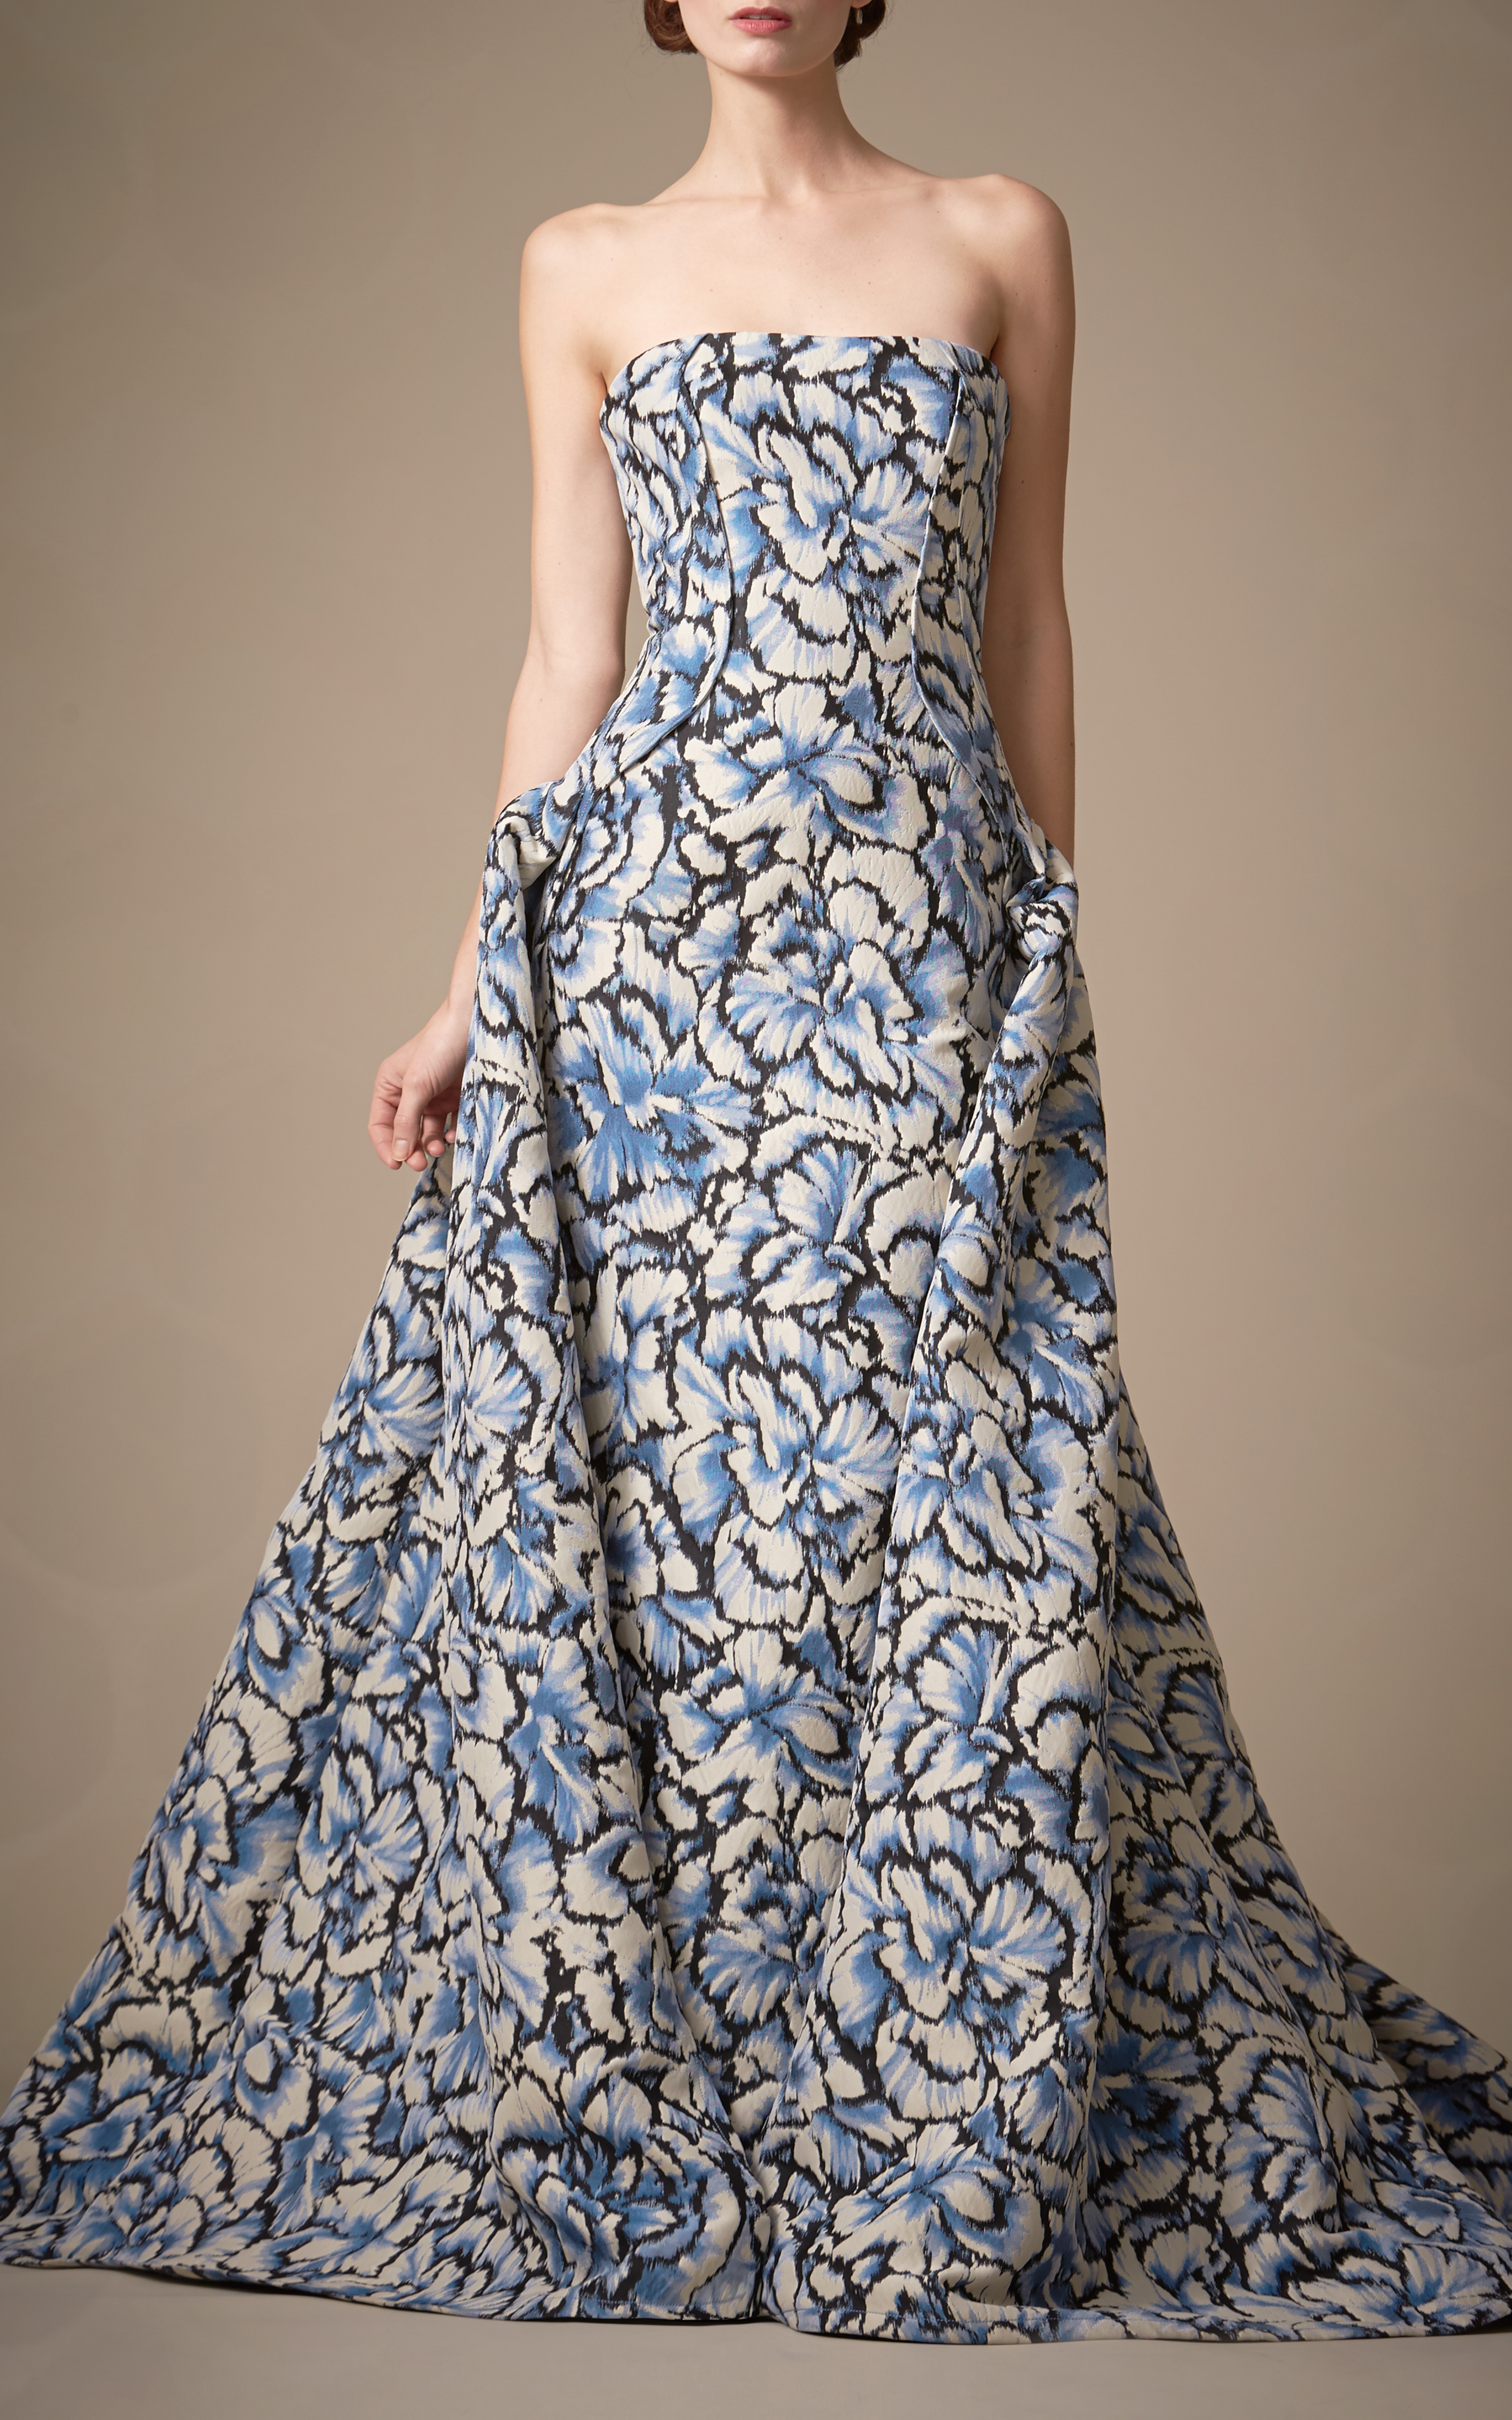 Lyst - Carolina Herrera Floral Printed Ball Gown in White